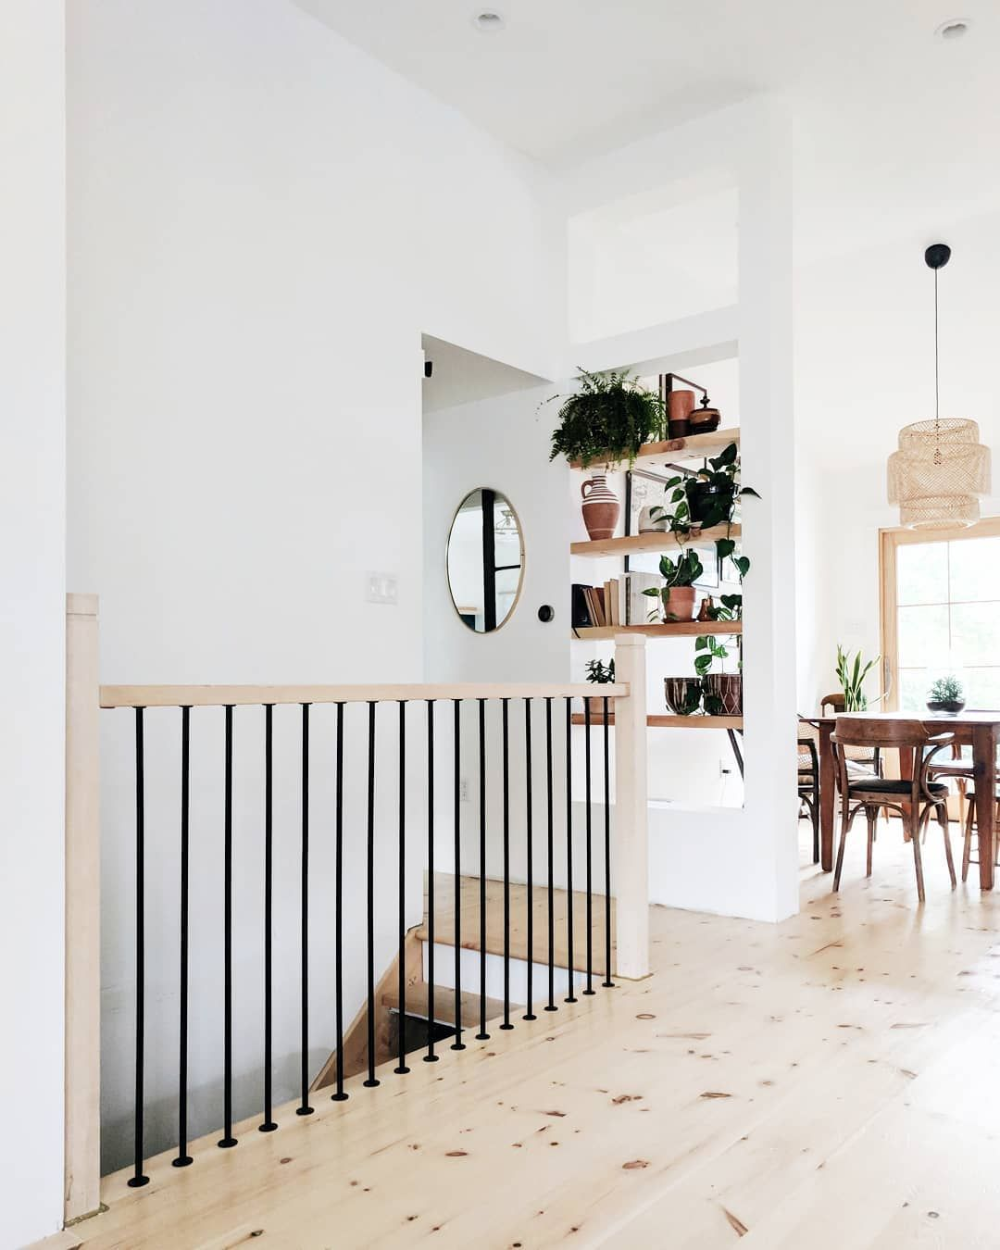 Scandinavian Stair Railing Google Search In 2020 Modern Stair Railing Diy Stair Railing Modern Stairs